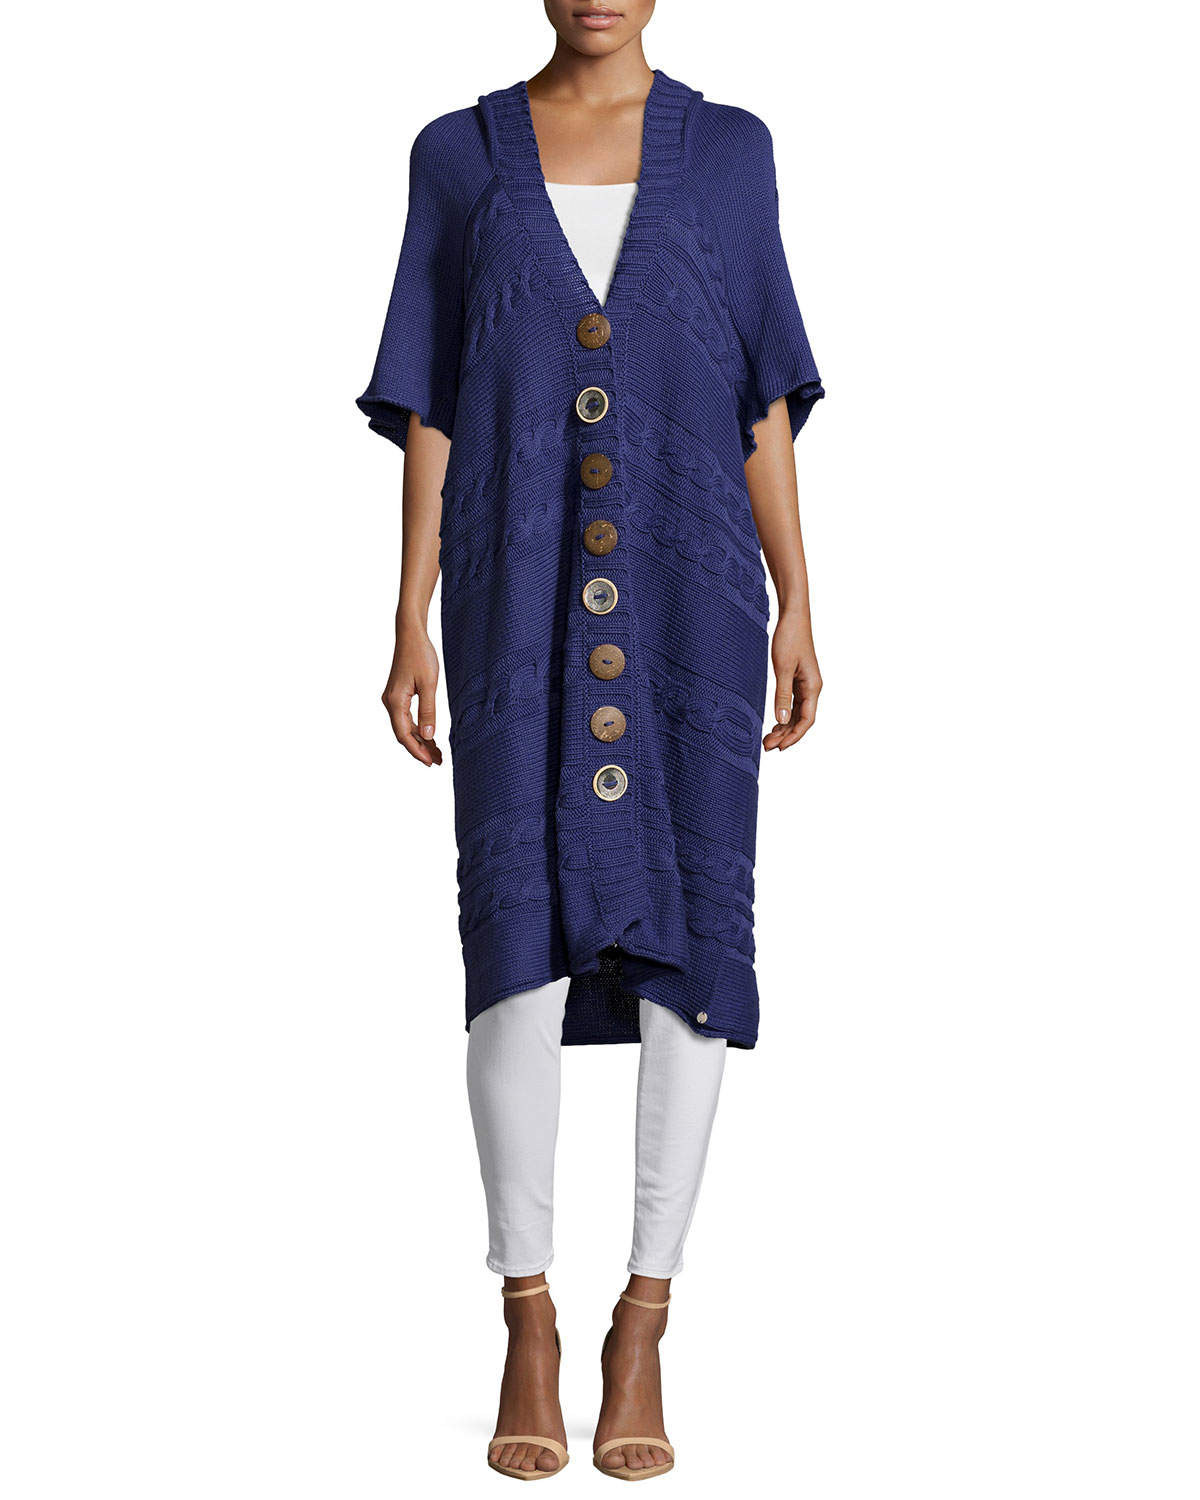 Pure handknit Hooded Short-sleeve Long Cardigan in Blue | Lyst